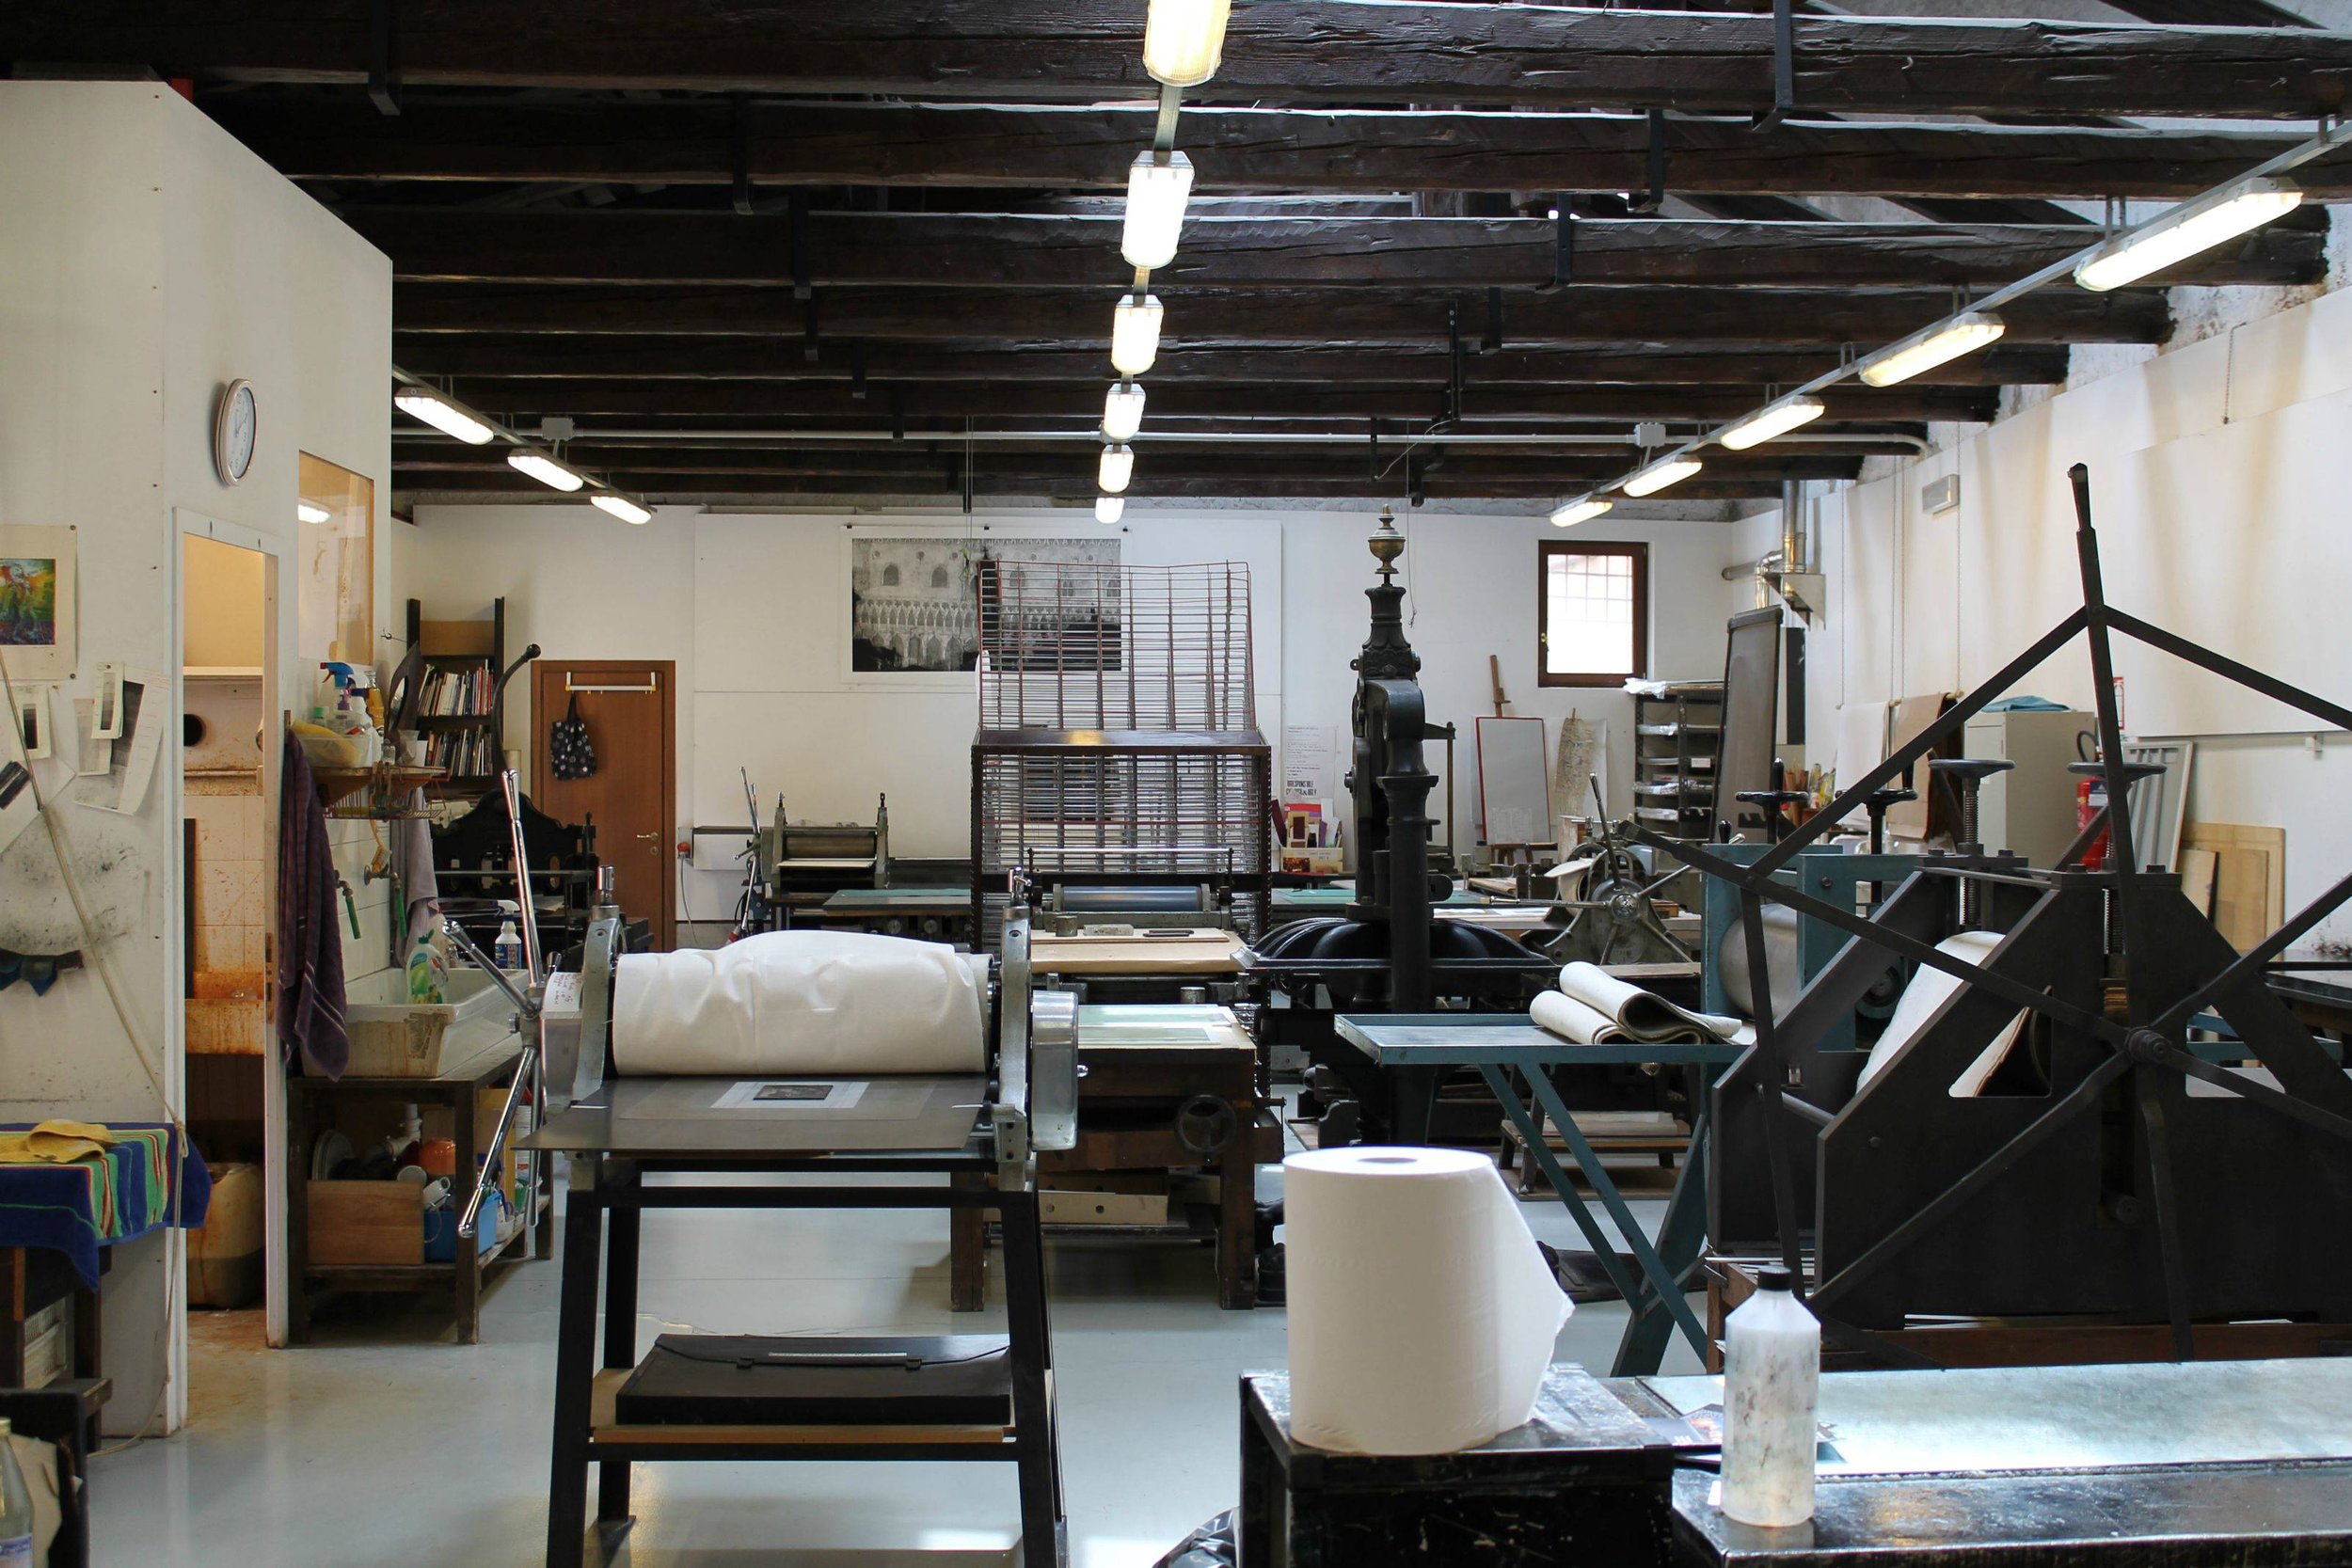 Print Studio of the Scoula di Grafica